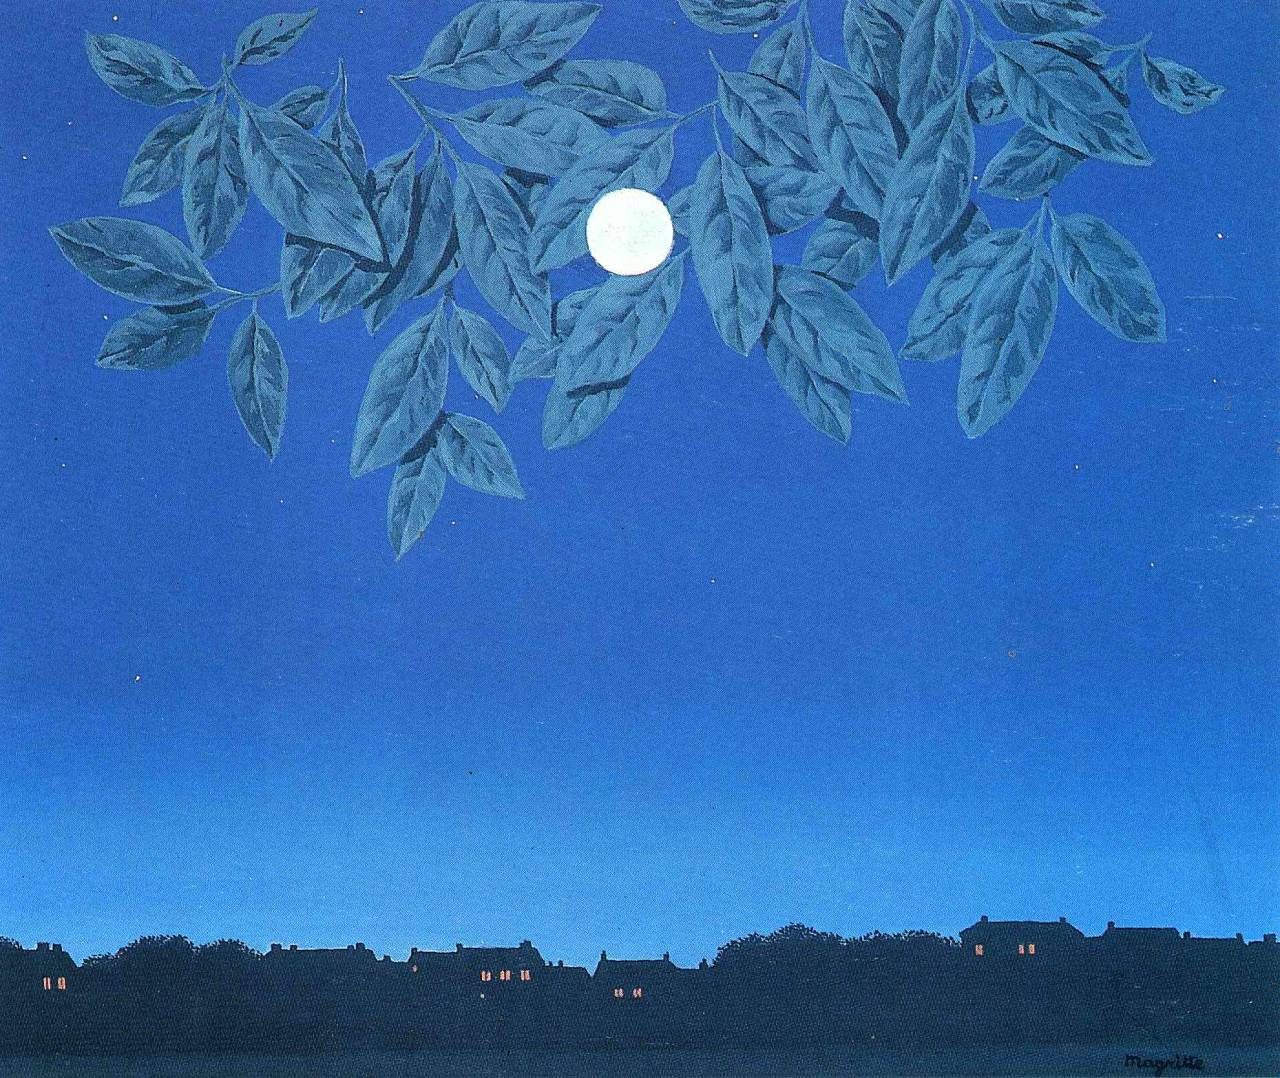 The blank page, 1967 Rene Magritte